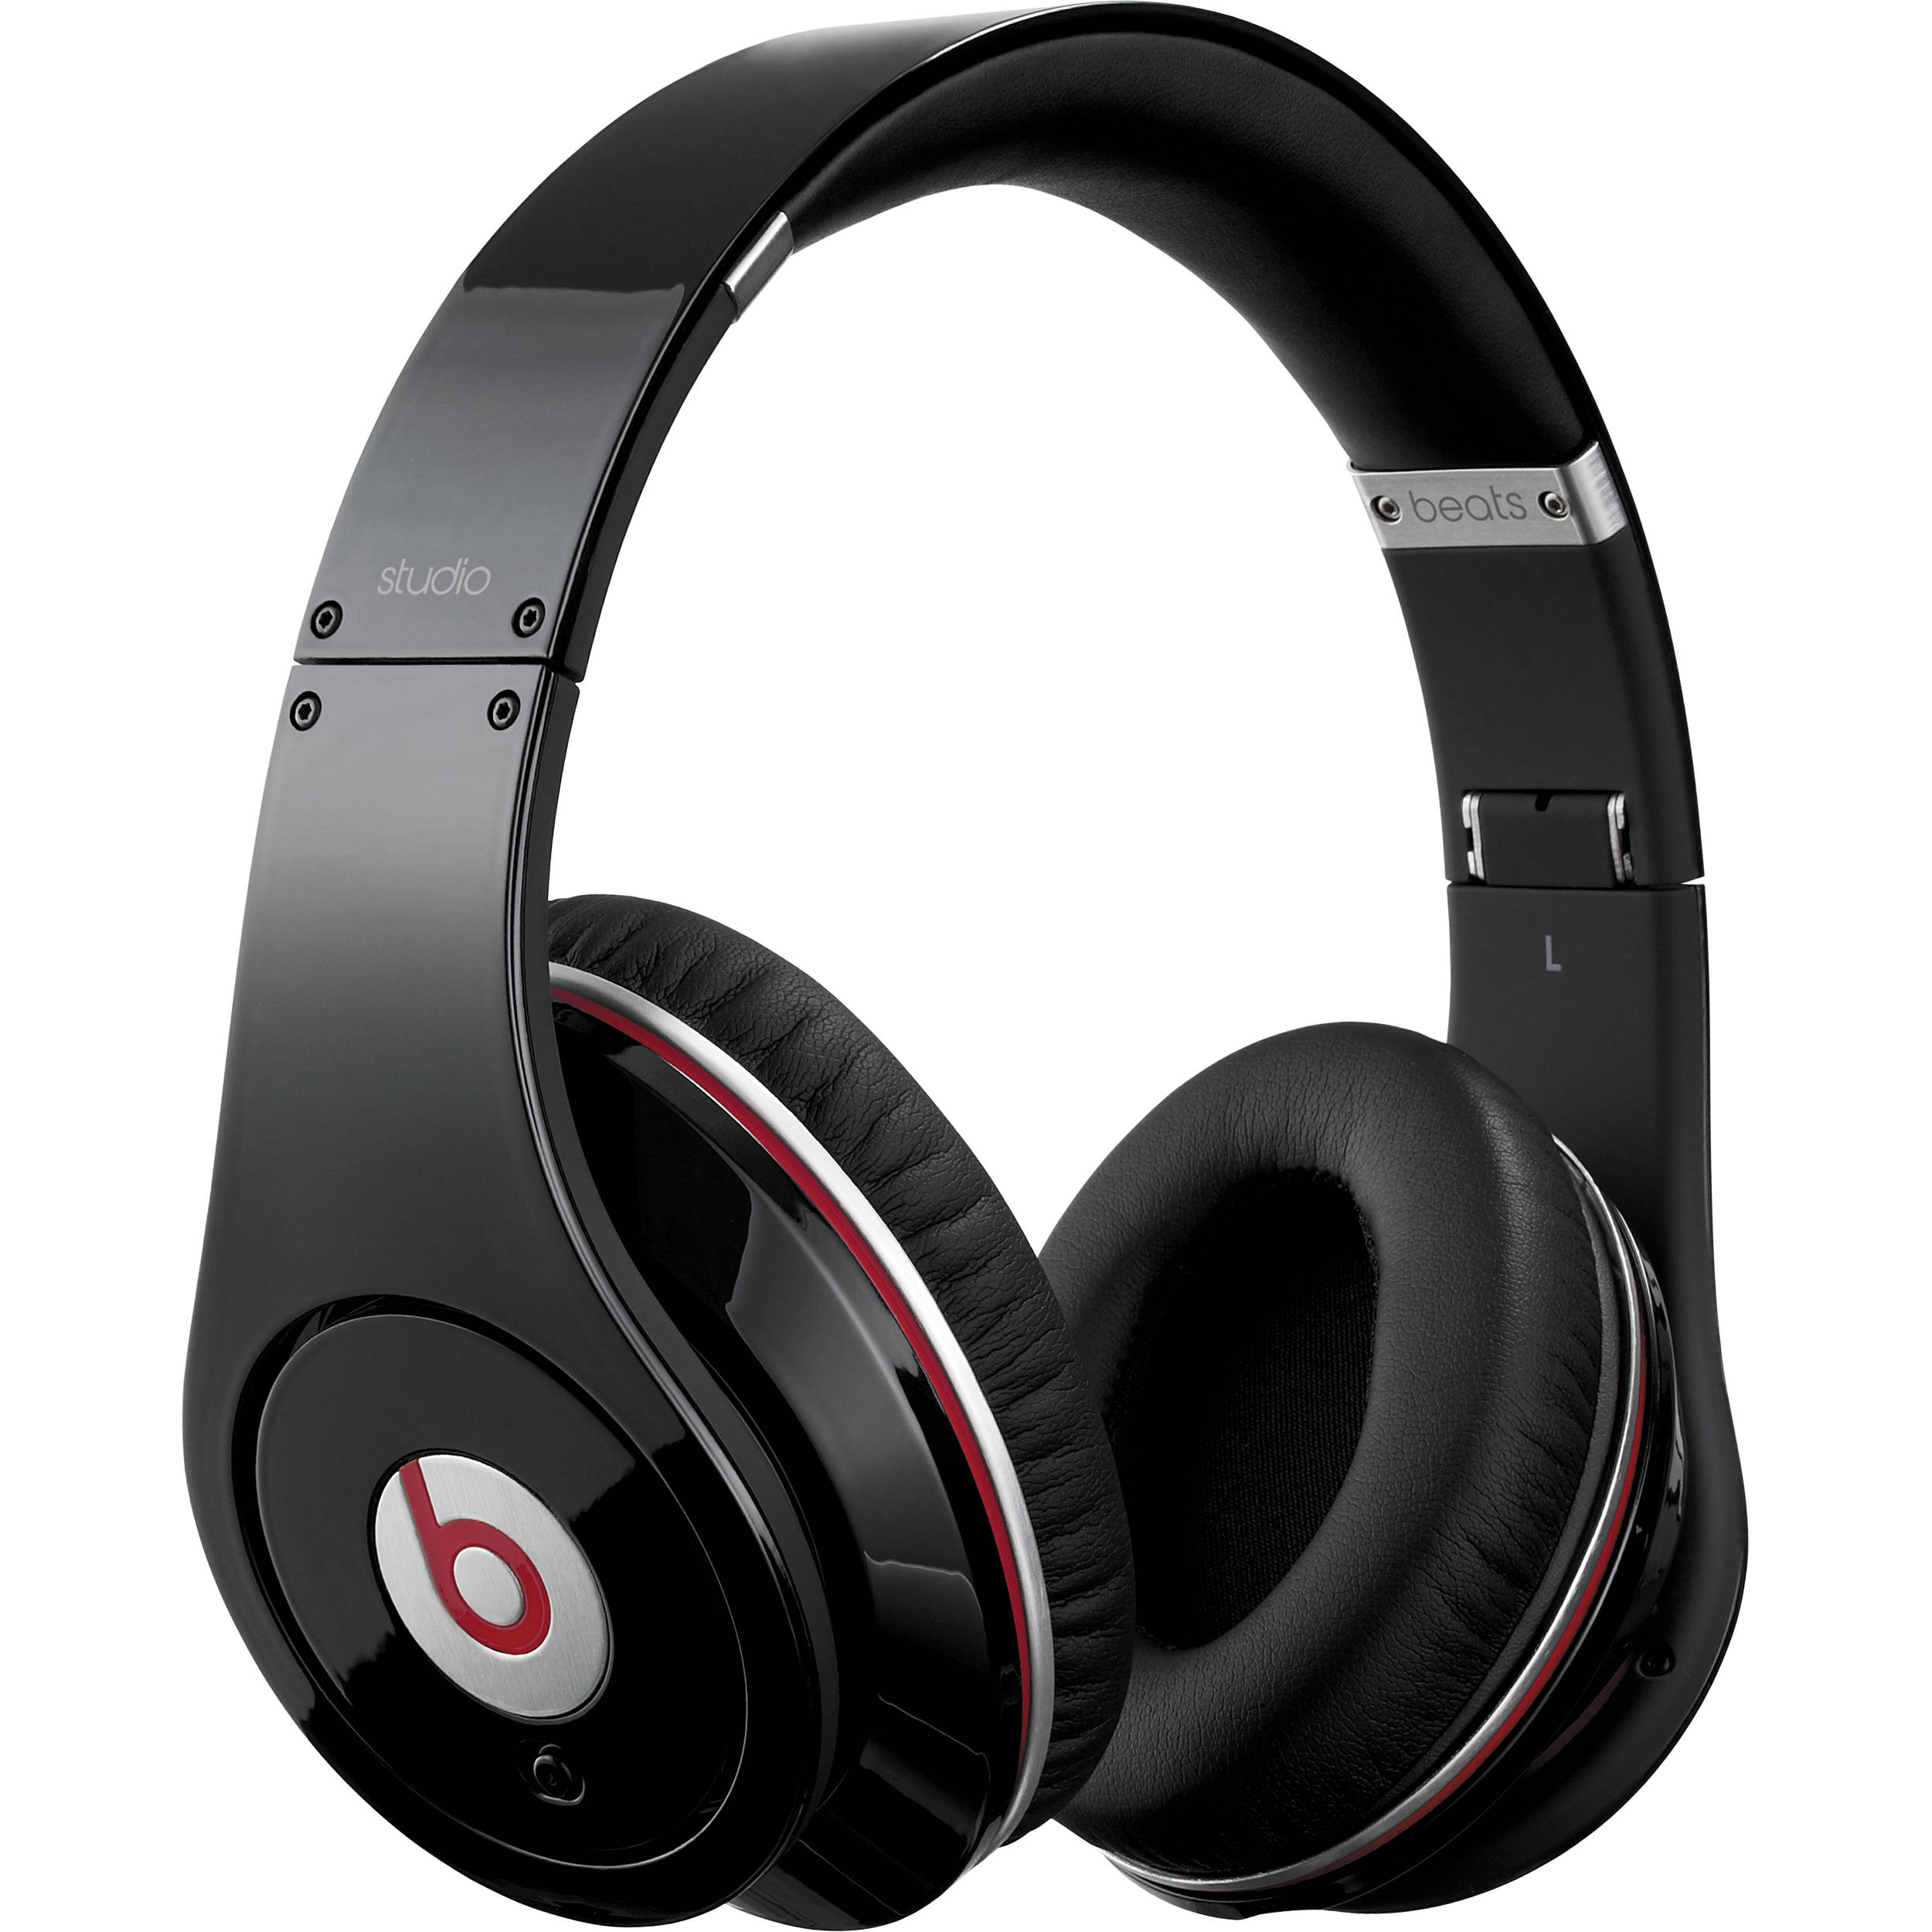 Beats by dr dre clipart.